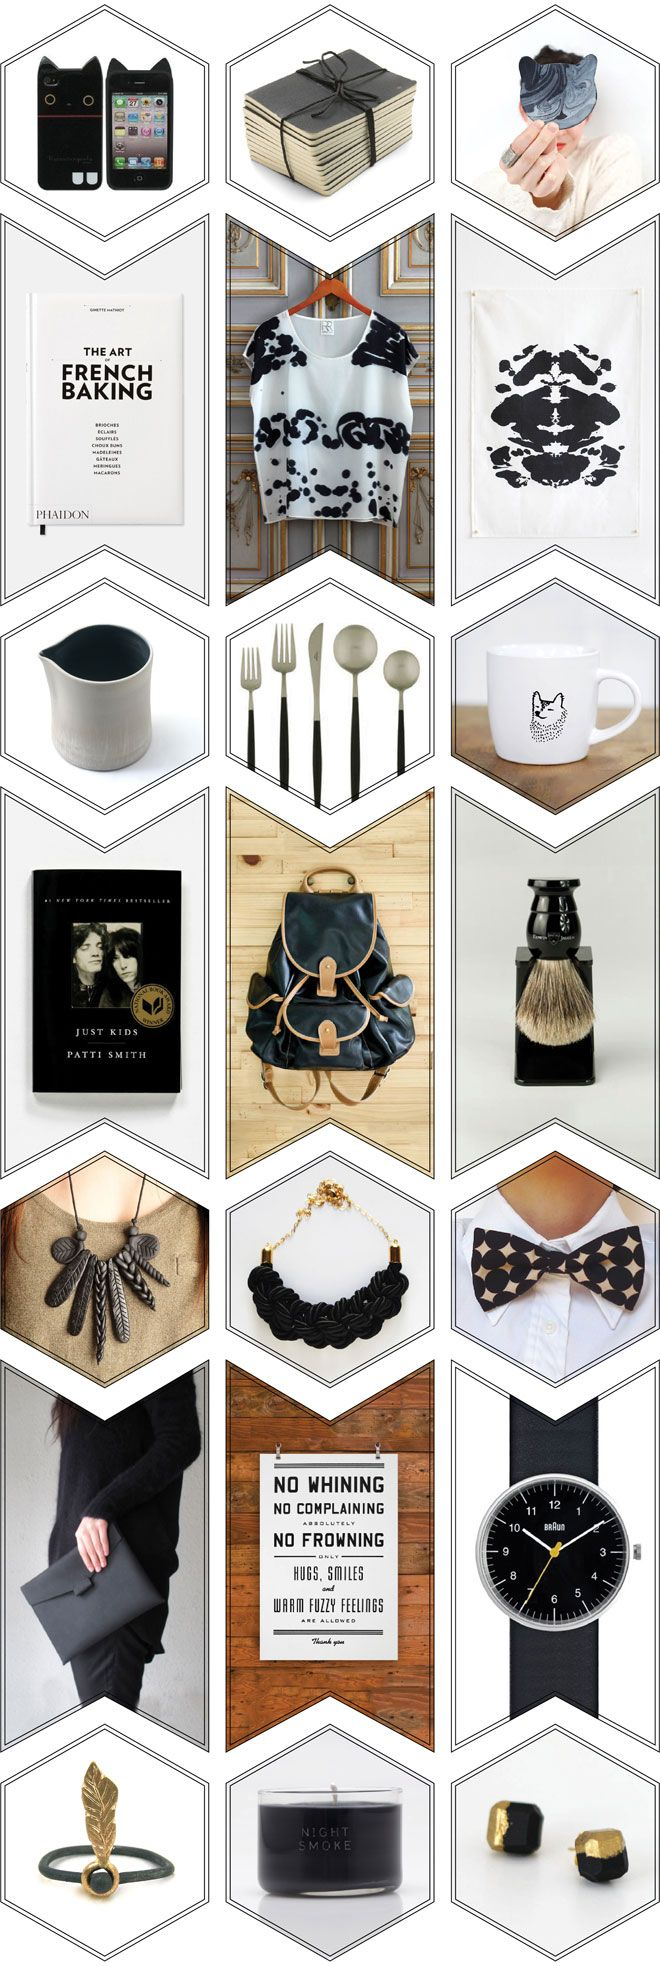 Miss Moss gift guide  But I might have to figure out where to reuse this photo layout idea!